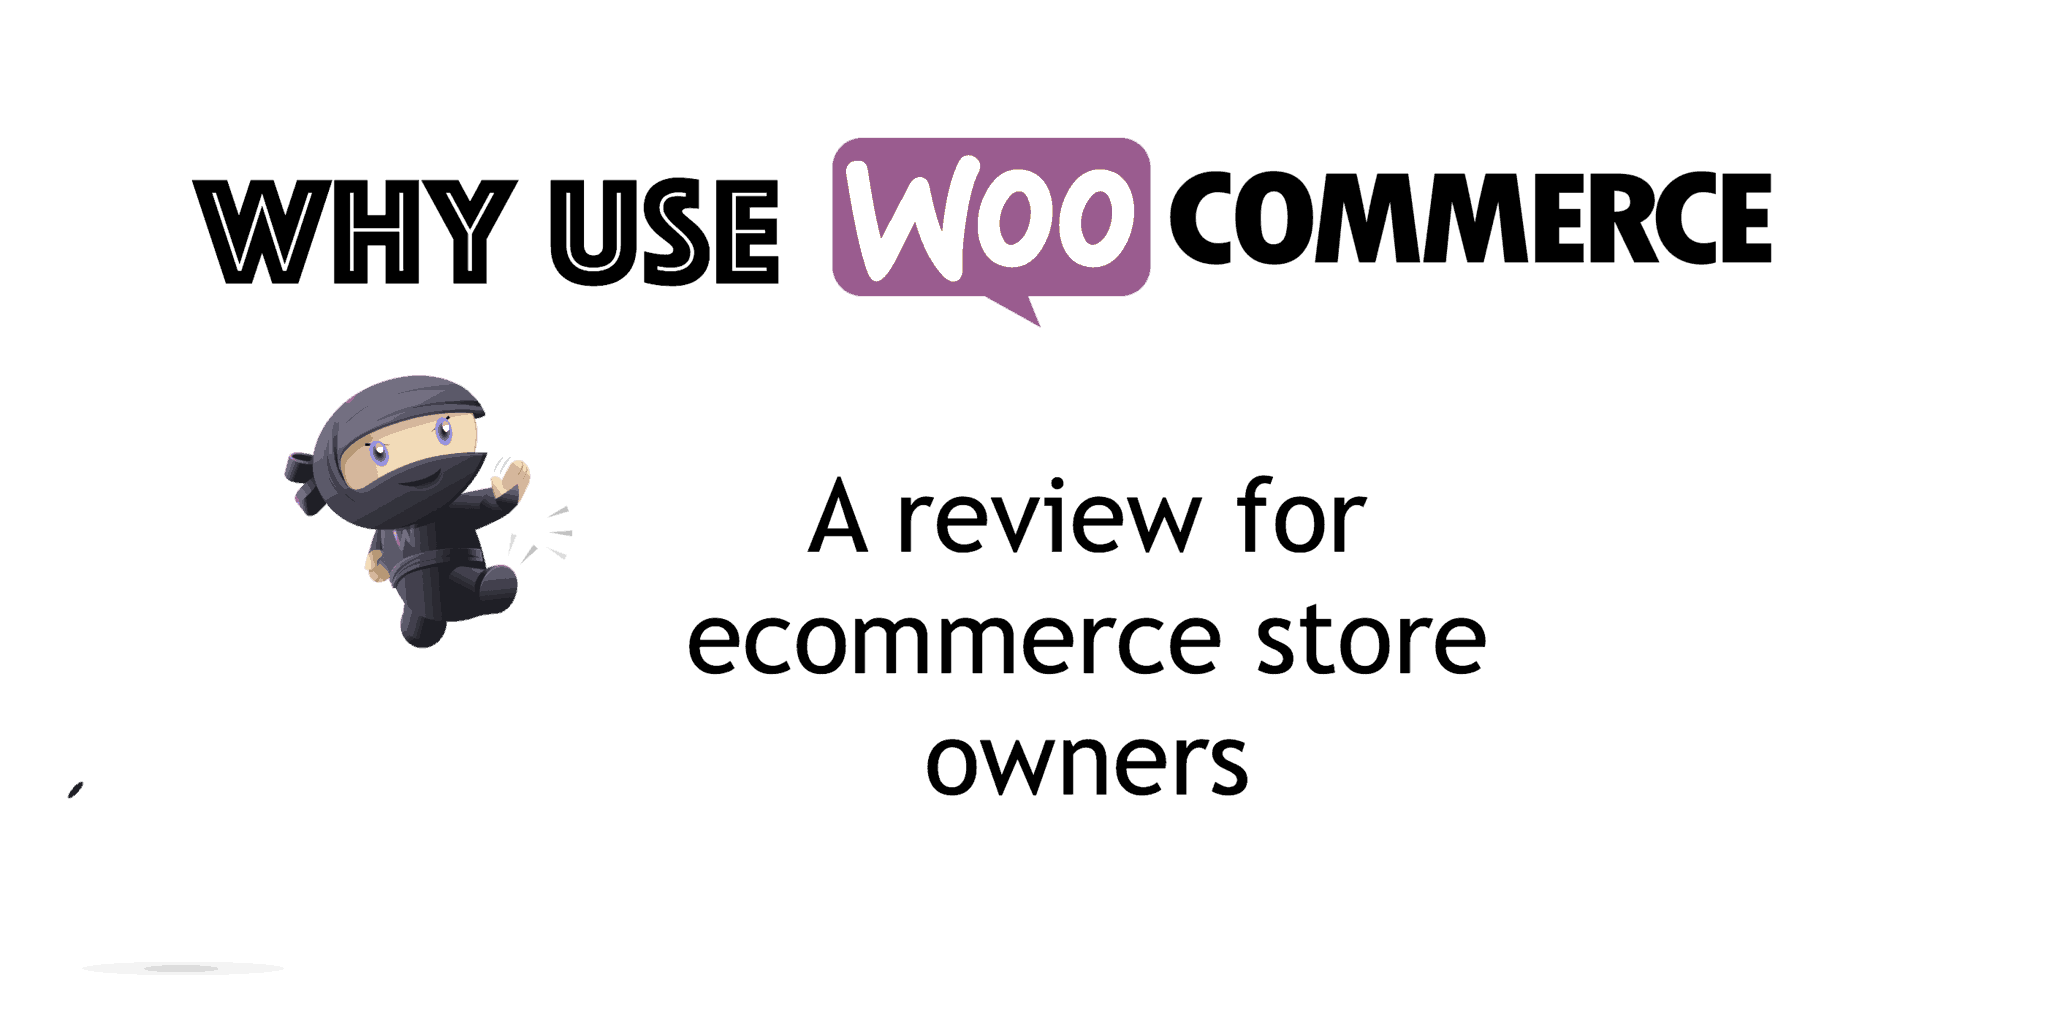 WooCommerce Review : Why WooCommerce For Online Stores